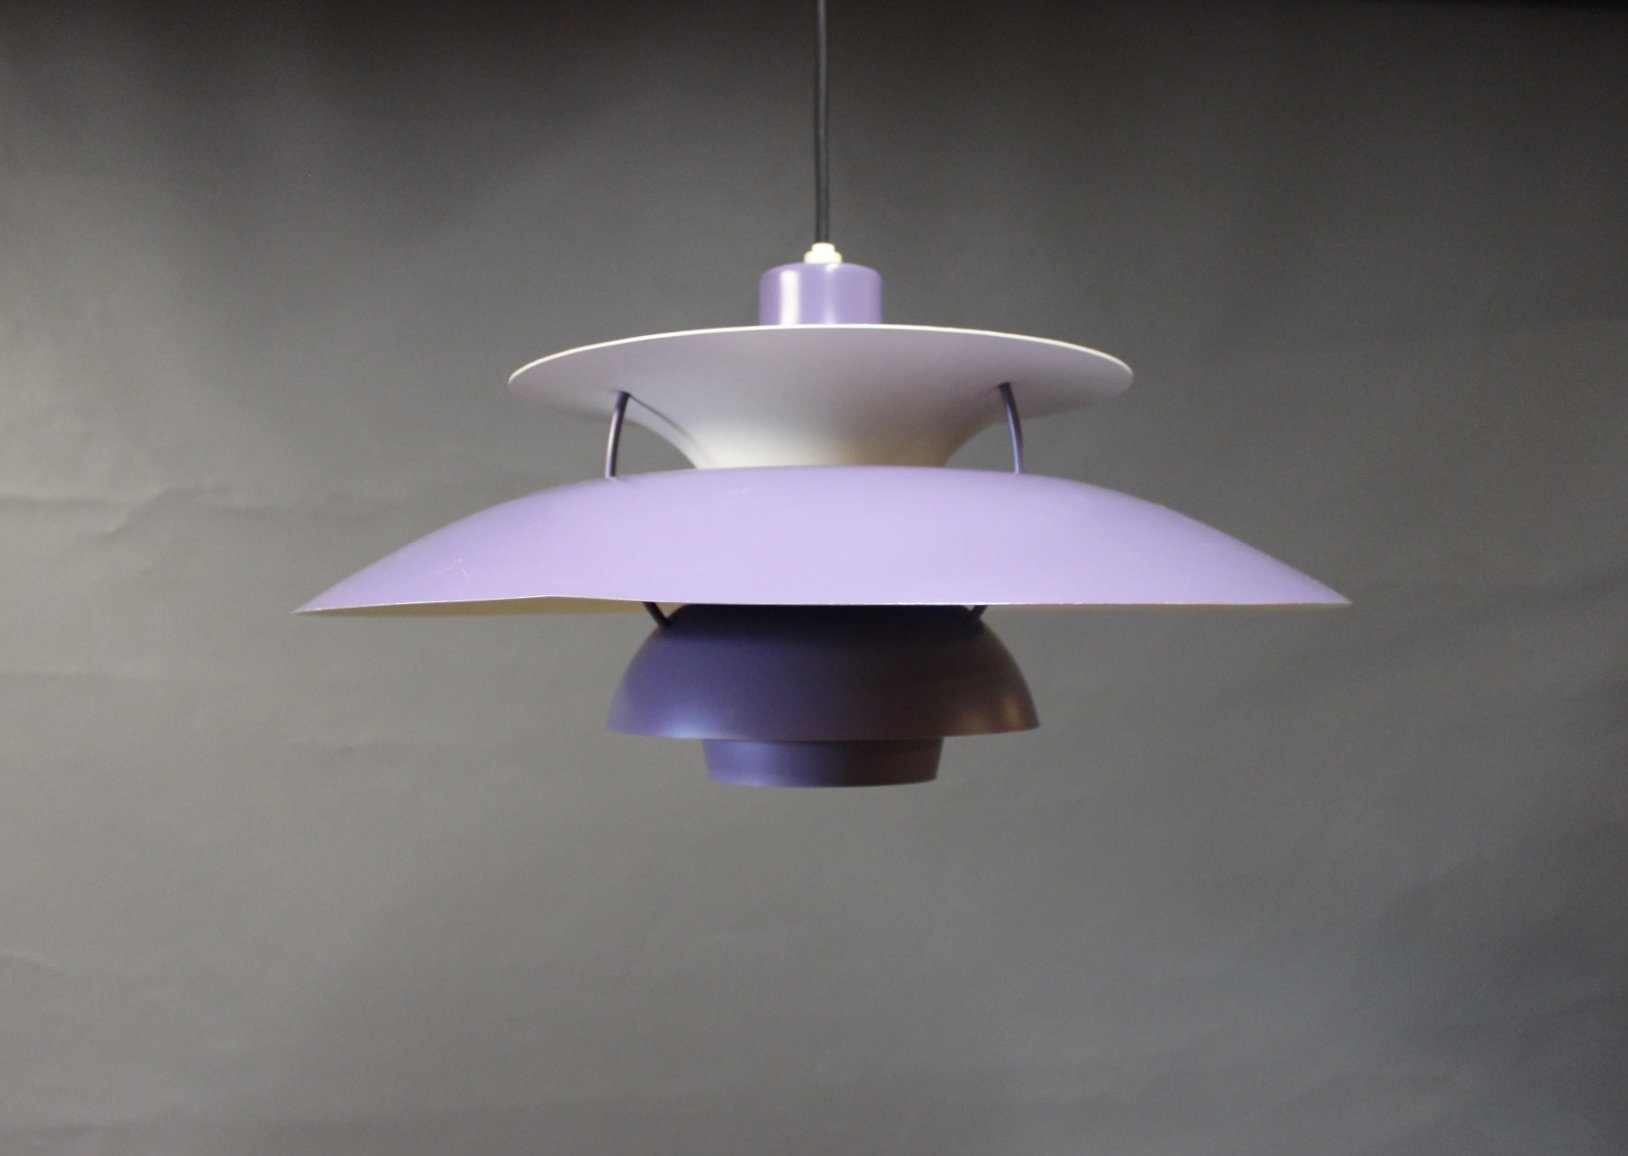 purple ph5 pendant by poul henningsen for louis poulsen 1970s for sale at pamono. Black Bedroom Furniture Sets. Home Design Ideas